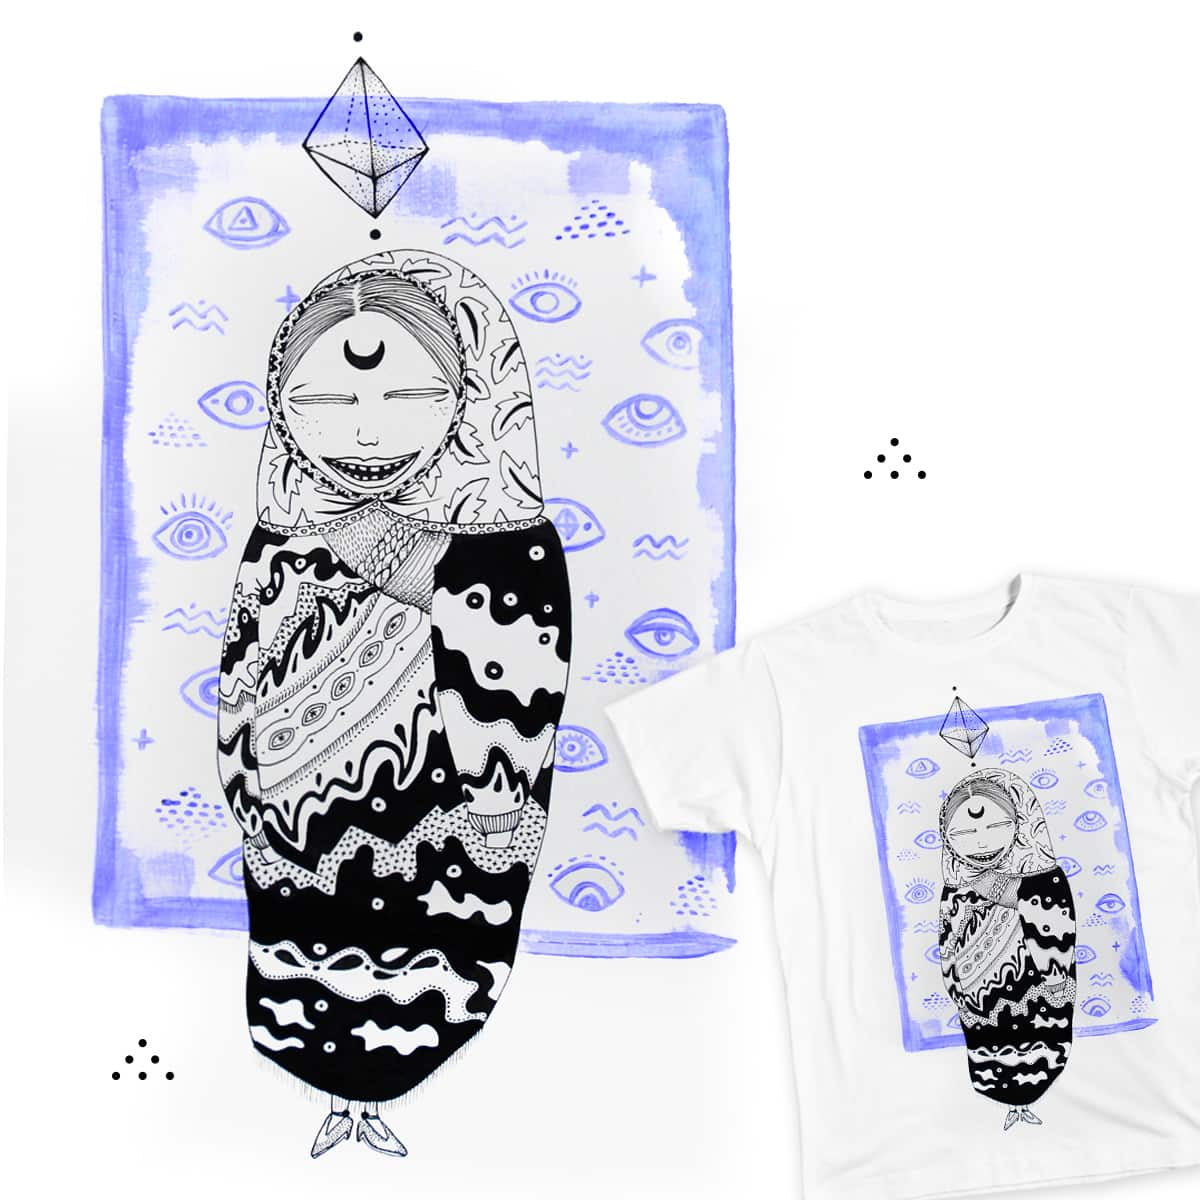 Mystic Matrioska by Valeria Di on Threadless